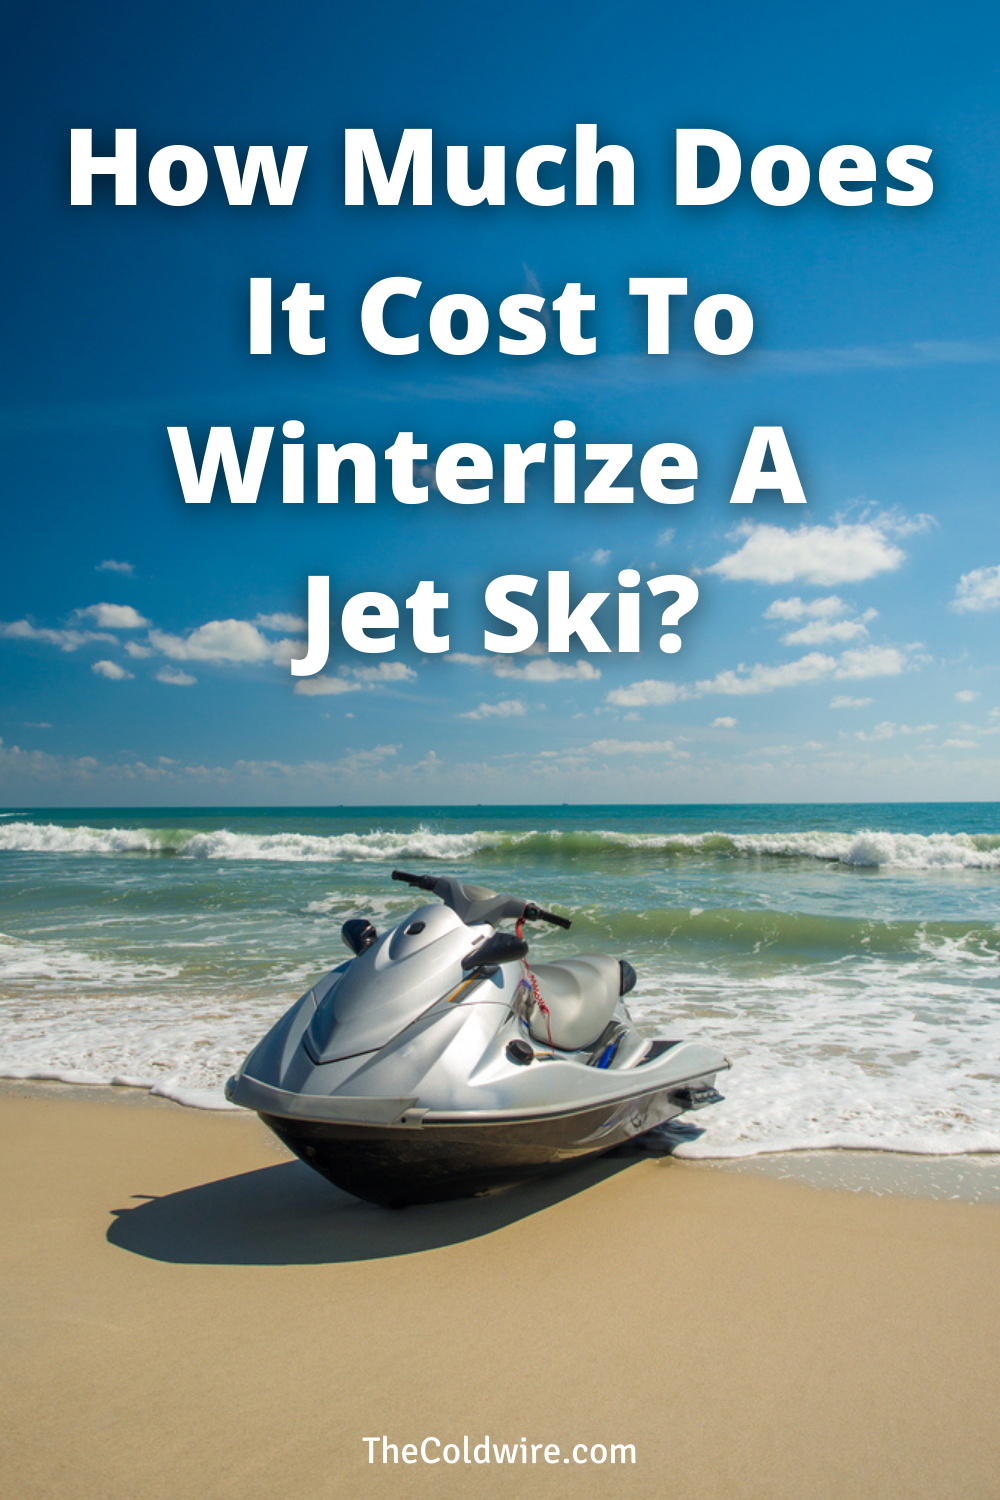 How Much Does It Cost To Winterize A Jet Ski Jet Ski Skiing Winter